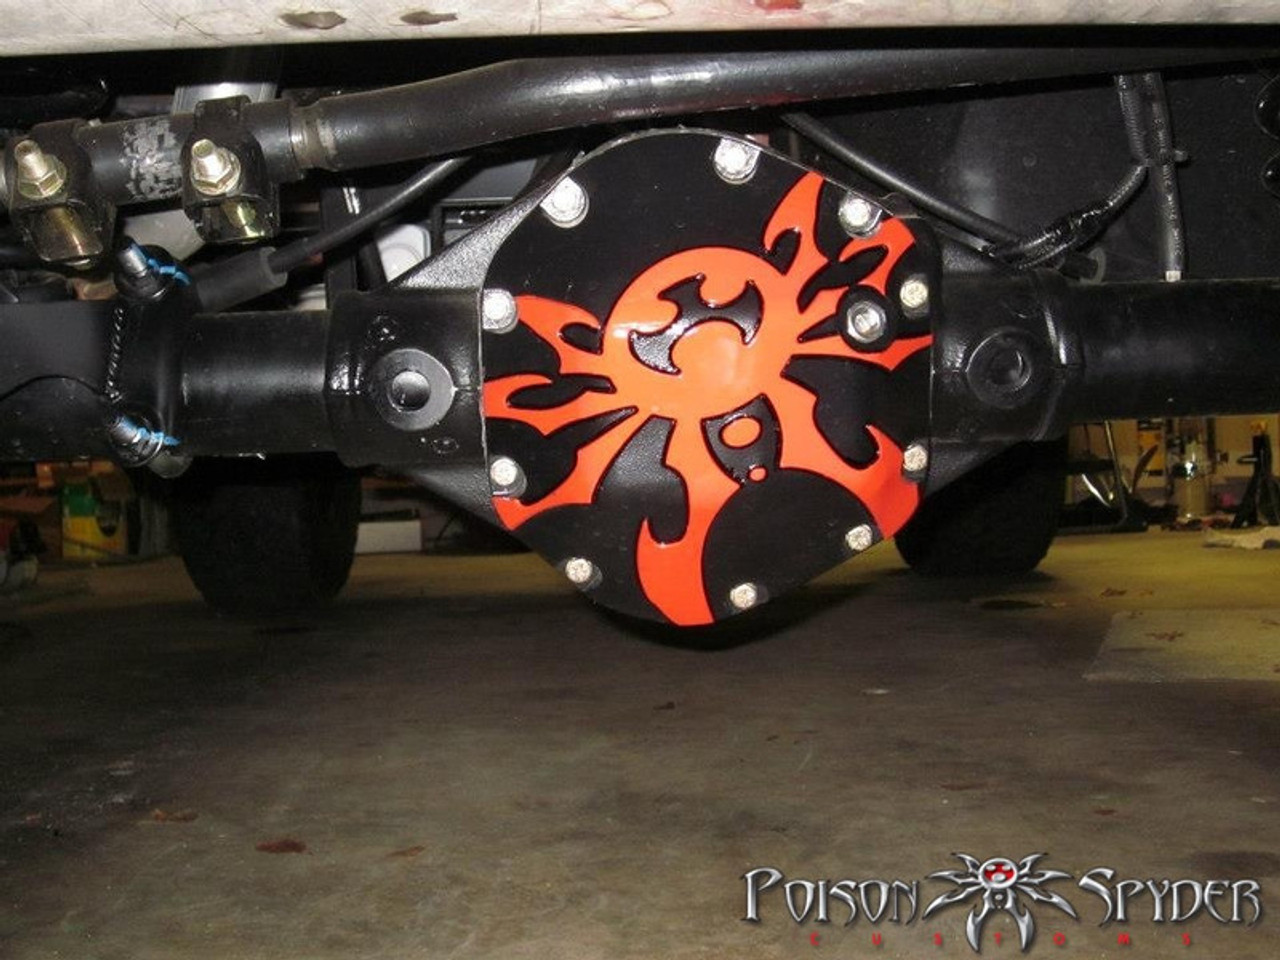 Poison Spyder Dana 30 Bombshell Diff Cover Custom Painted and Mounted